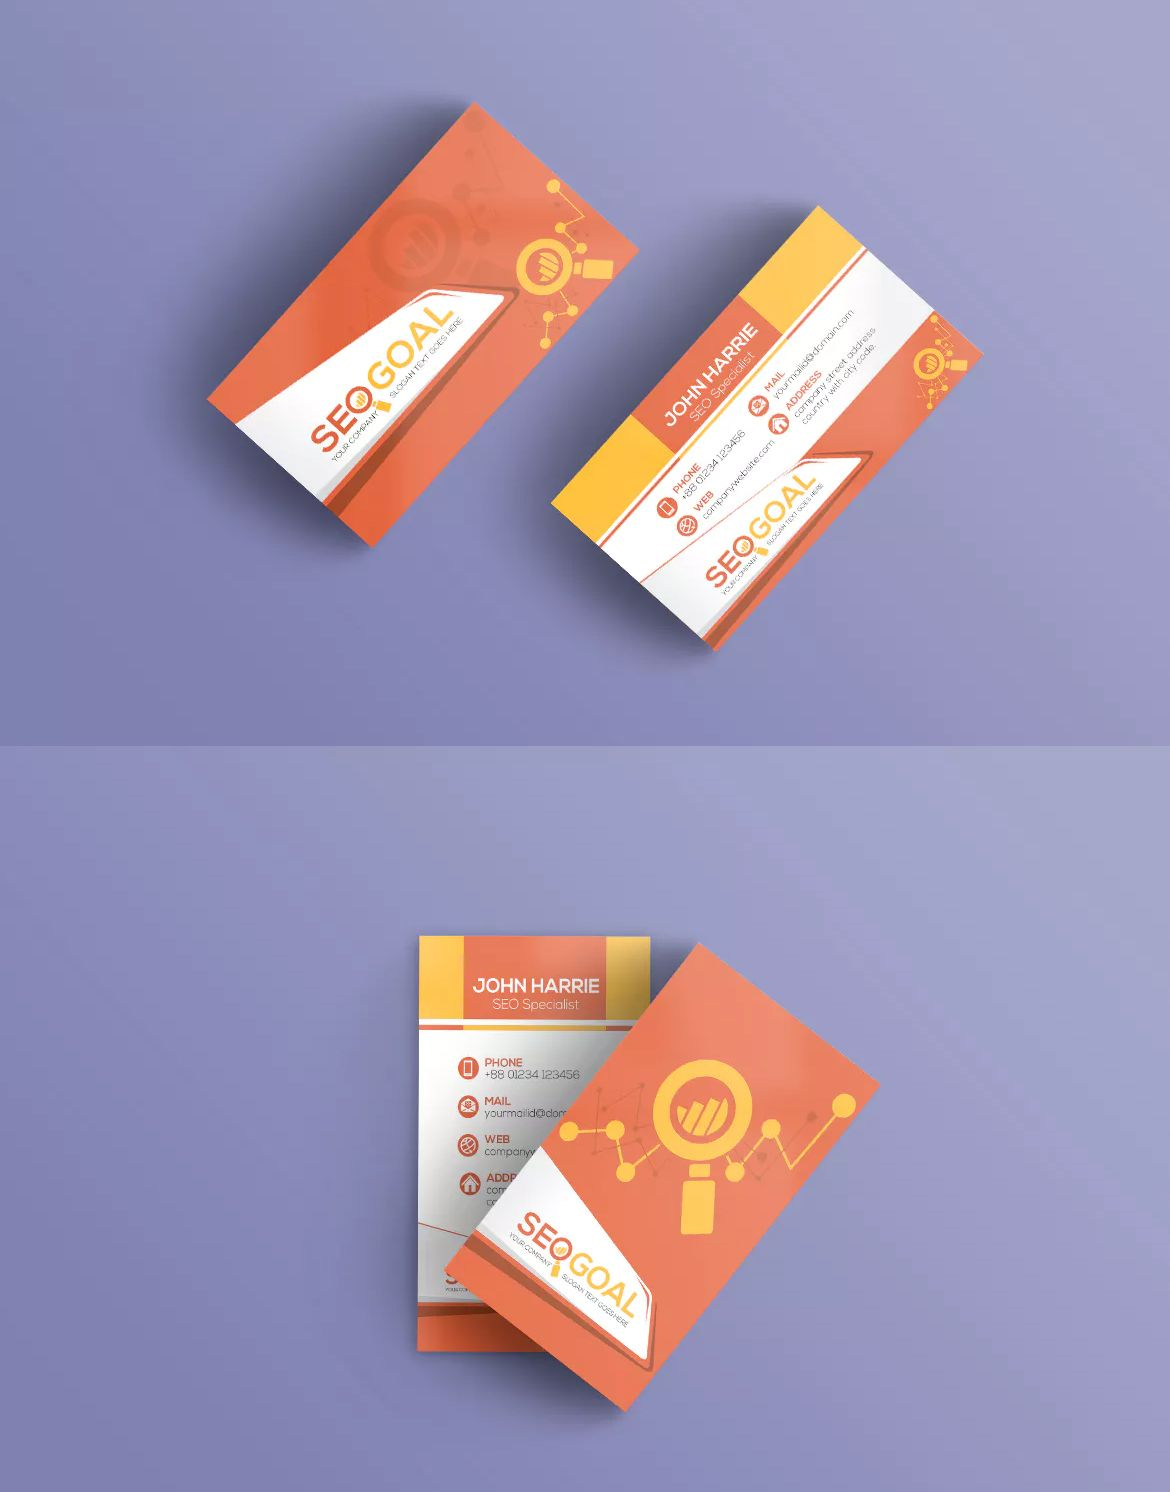 Seo search engine optimization business card template eps seo search engine optimization business card template eps colourmoves